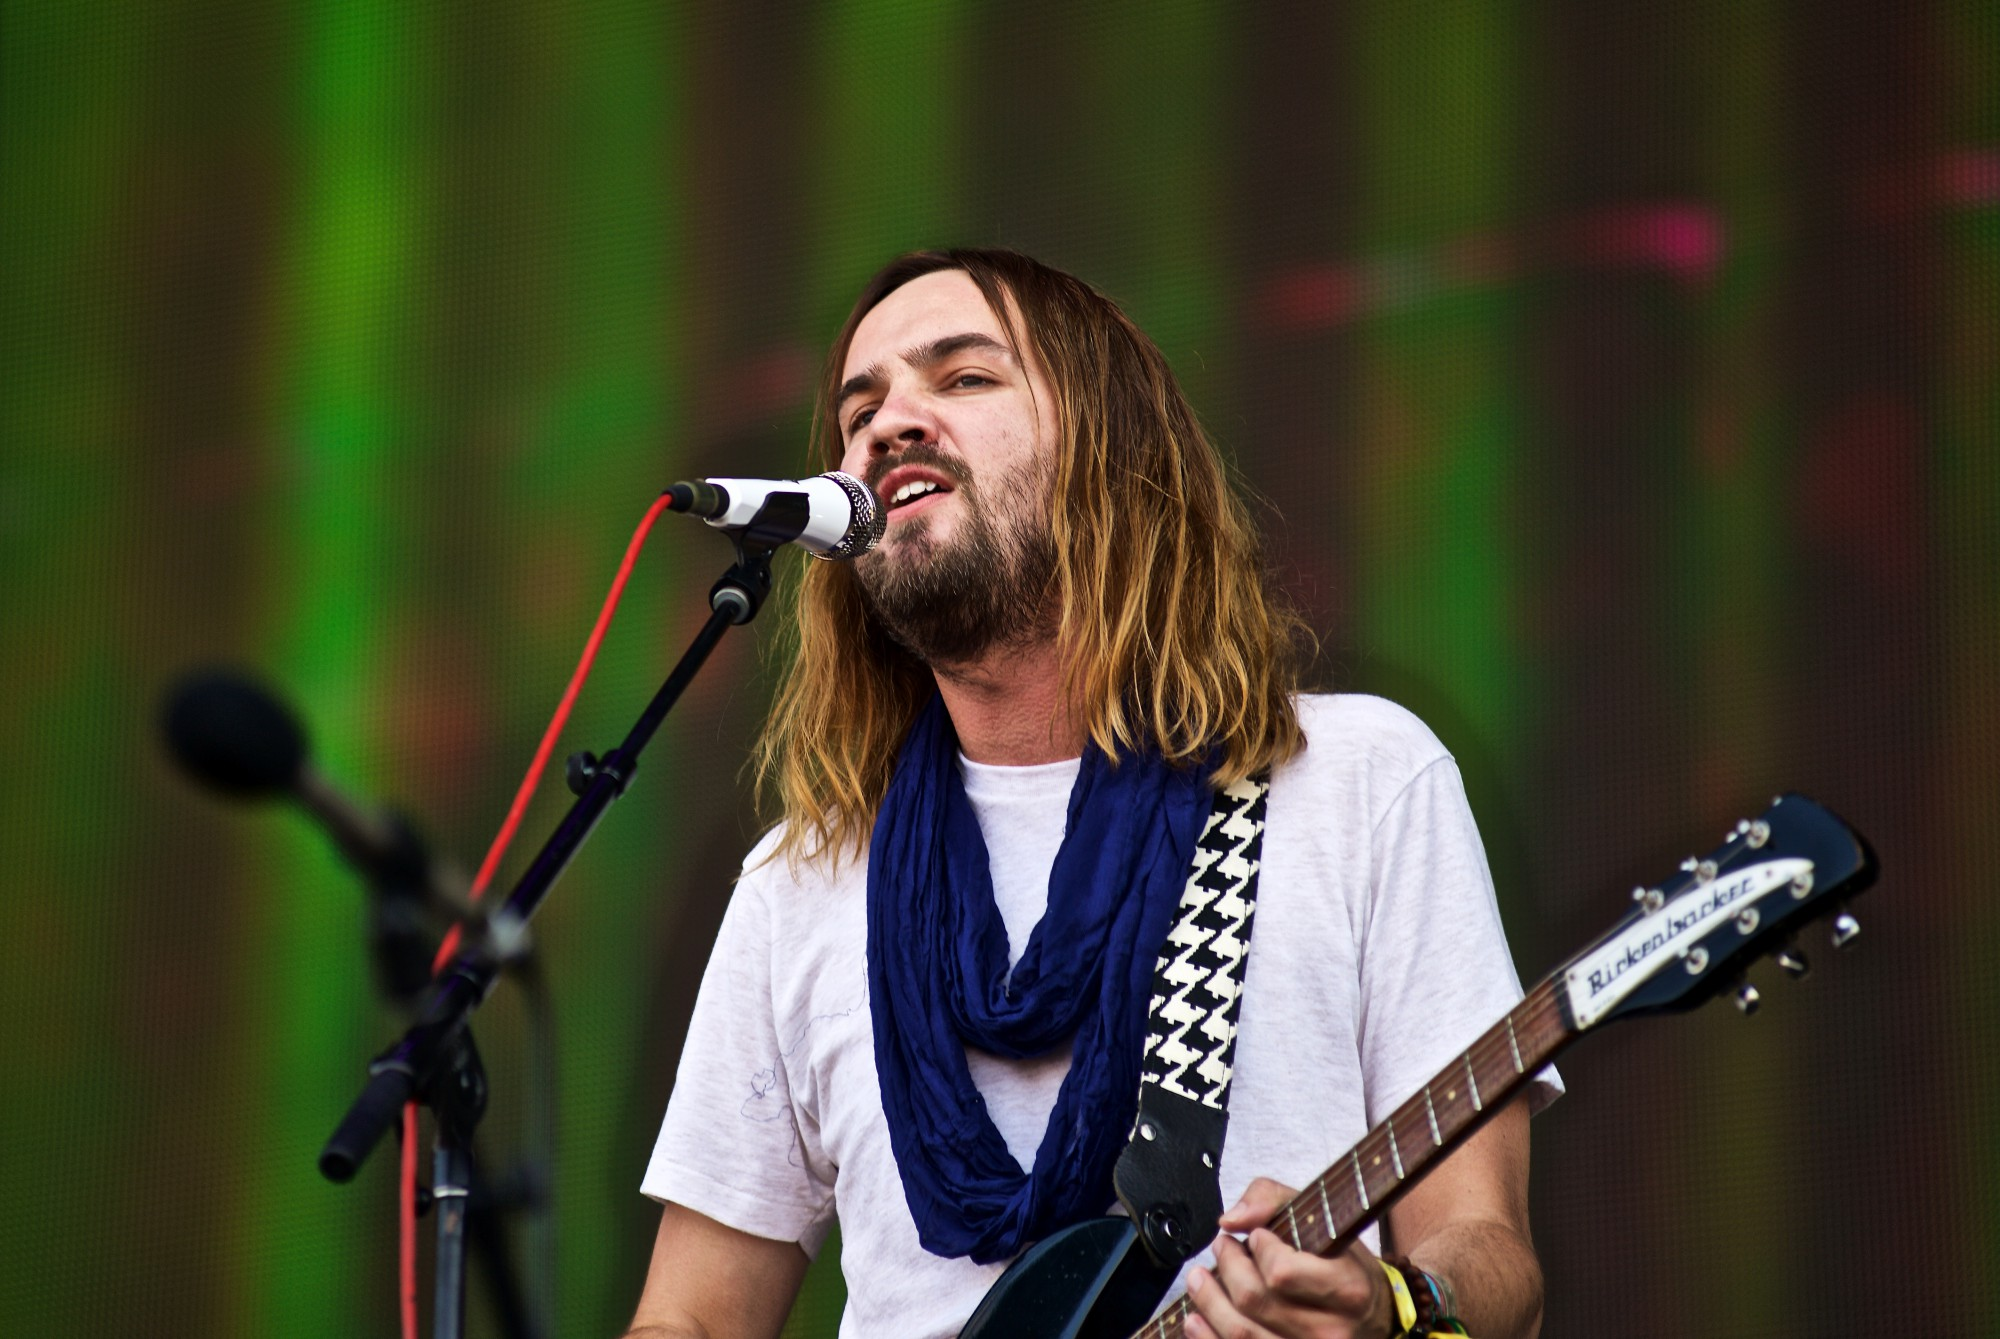 Tame Impala with Kevin Parker on vocals and guitar  performs at The Governors Ball Music Festival